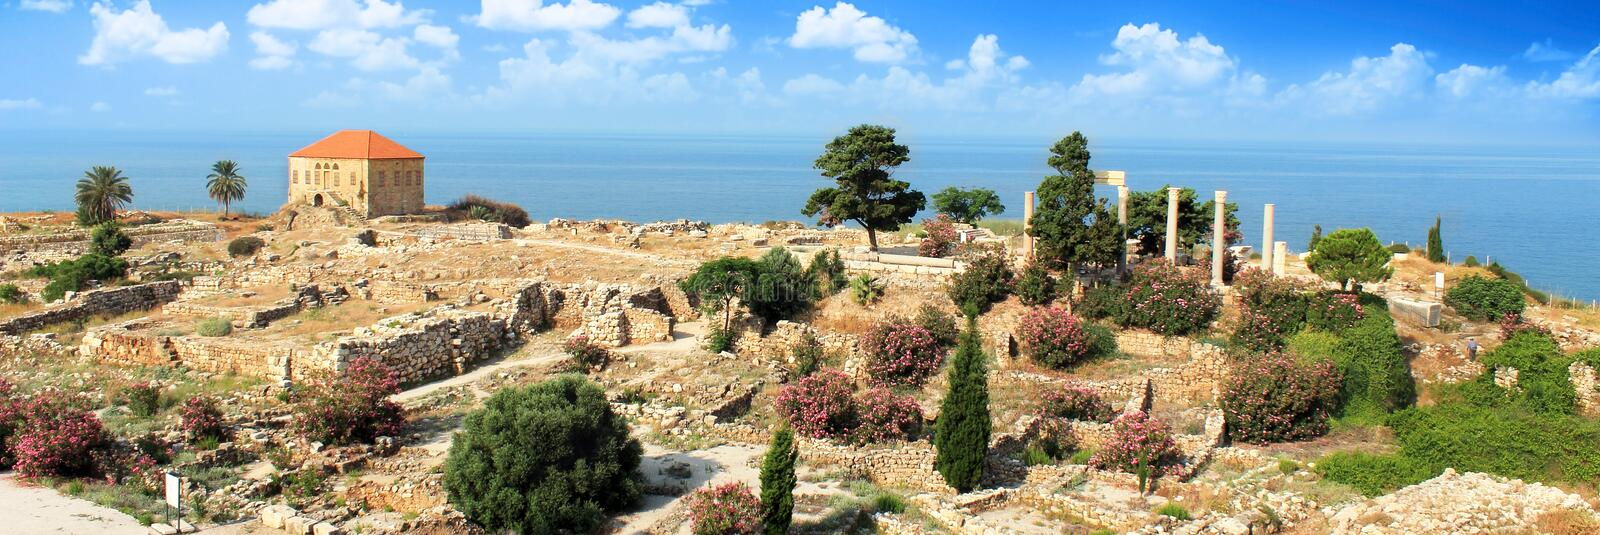 Byblos old house royalty free stock photography